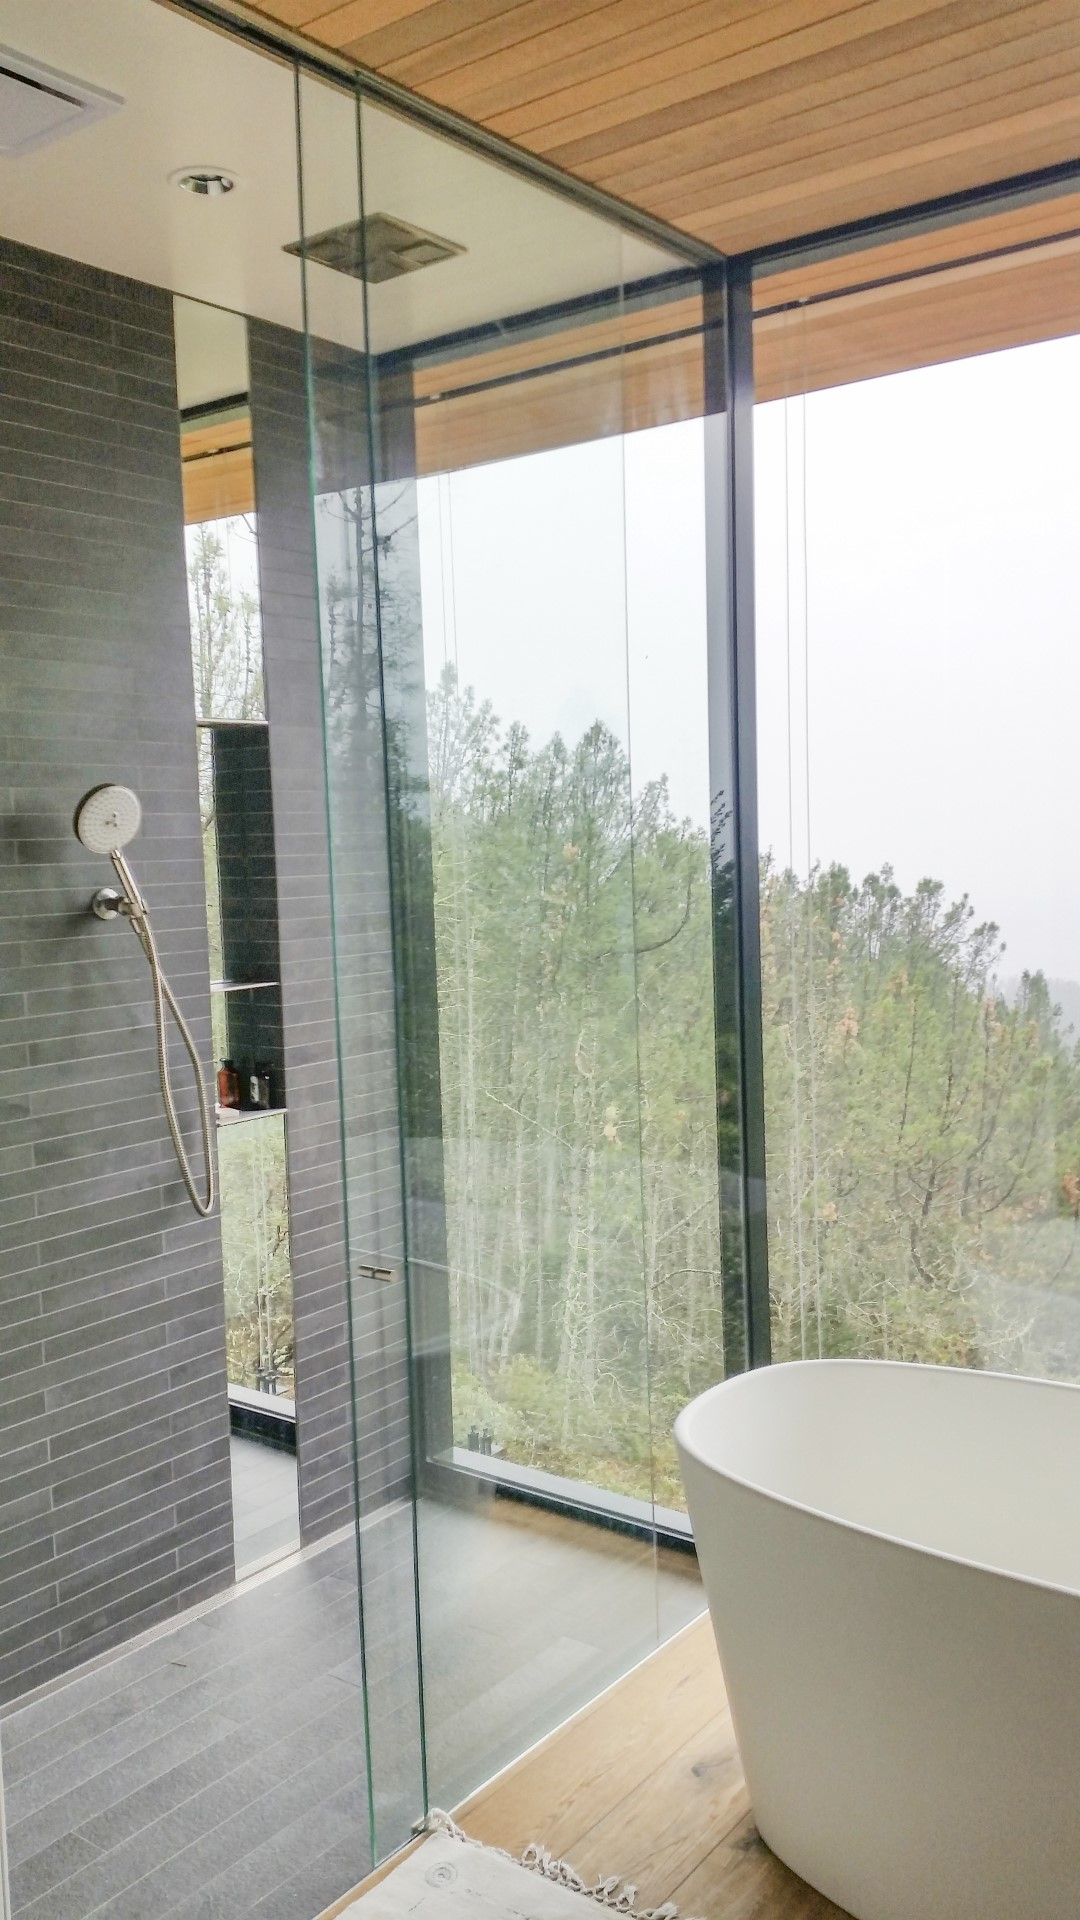 Whether You Are In Search Of A Standard Shower/tub Enclosure Or Desire A  Professionally Designed Glass Shower Enclosure Customized And Built To Meet  Your ...